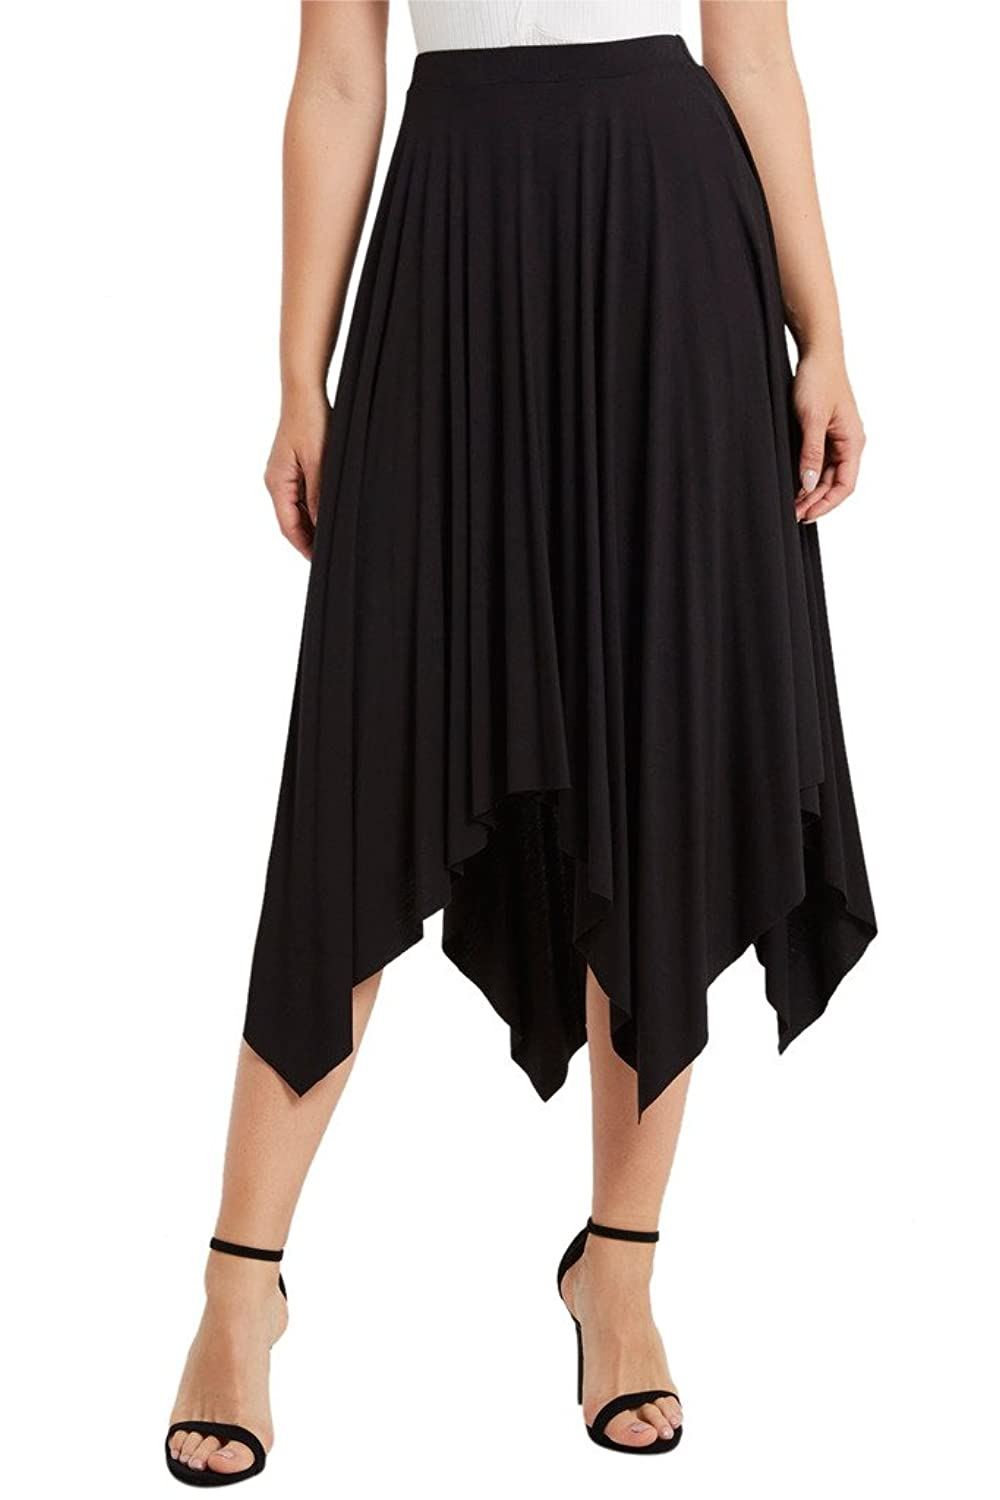 1920s Skirts, Gatsby Skirts, Vintage Pleated Skirts Poshsquare Womens Handkerchief Uneven Knit Skirt Dance Midi Skirt USA $24.00 AT vintagedancer.com